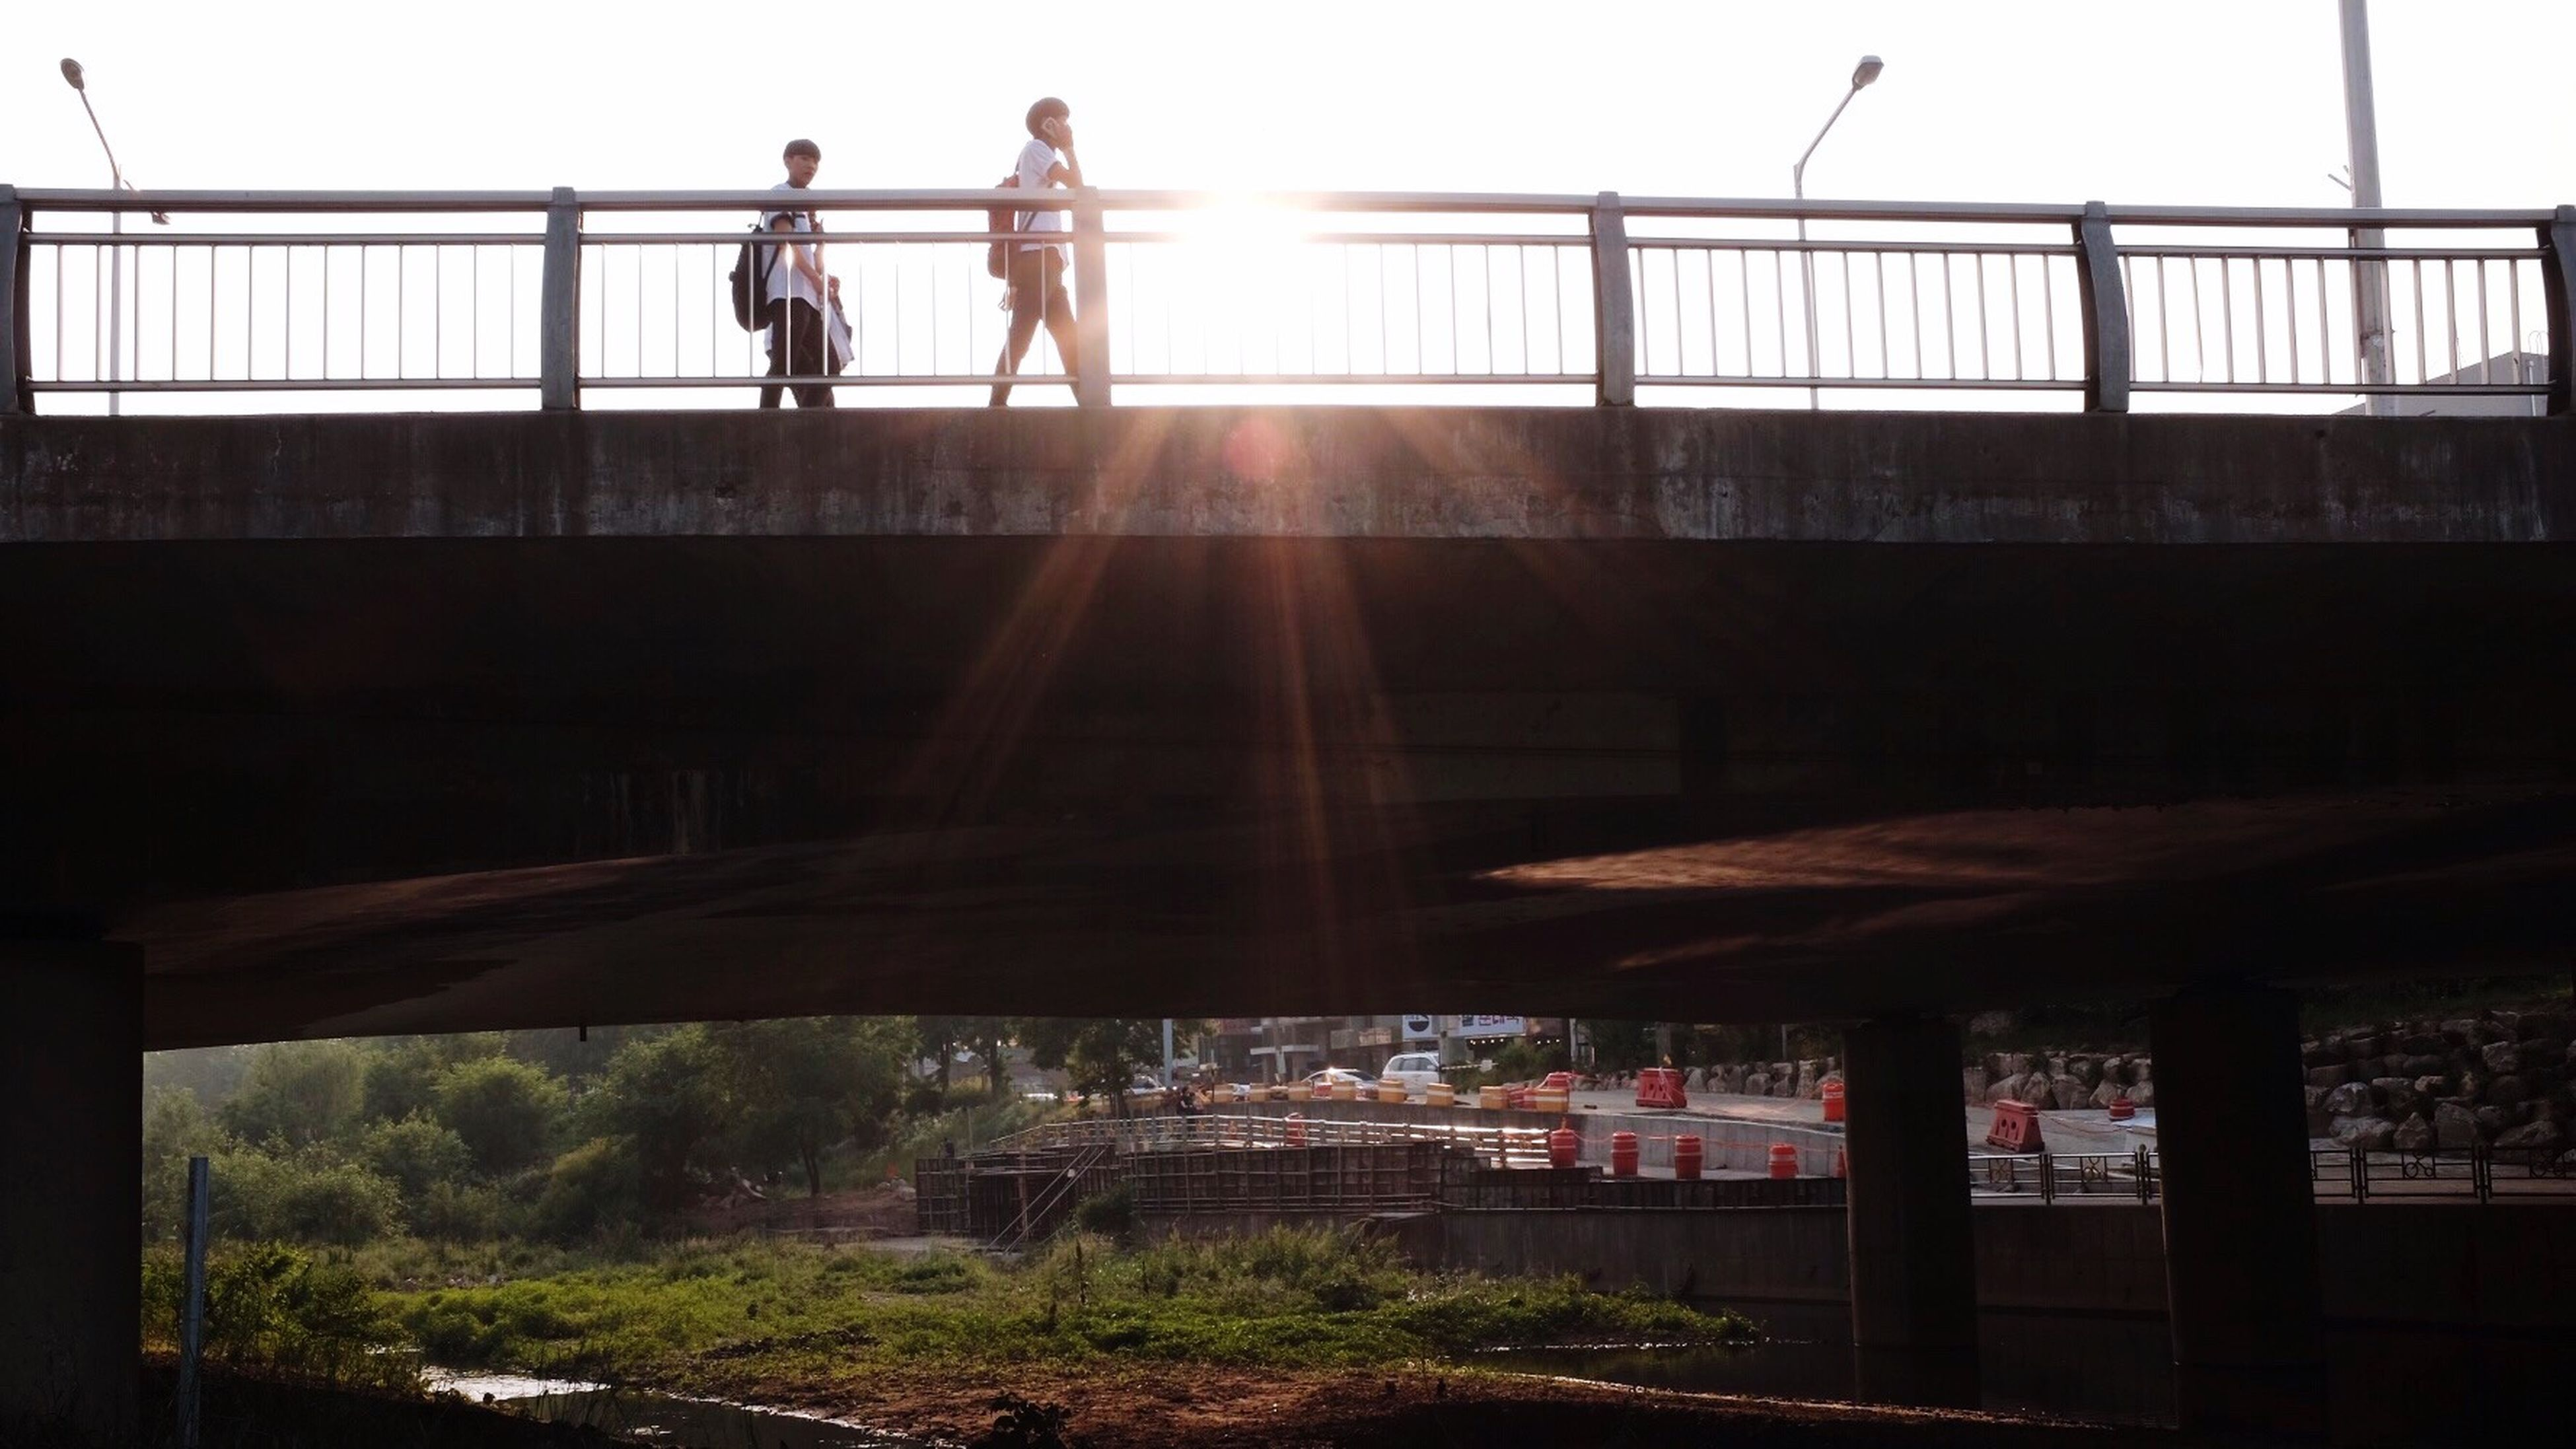 men, built structure, architecture, lifestyles, railing, sunlight, leisure activity, building exterior, person, fence, silhouette, walking, clear sky, standing, sun, sunbeam, day